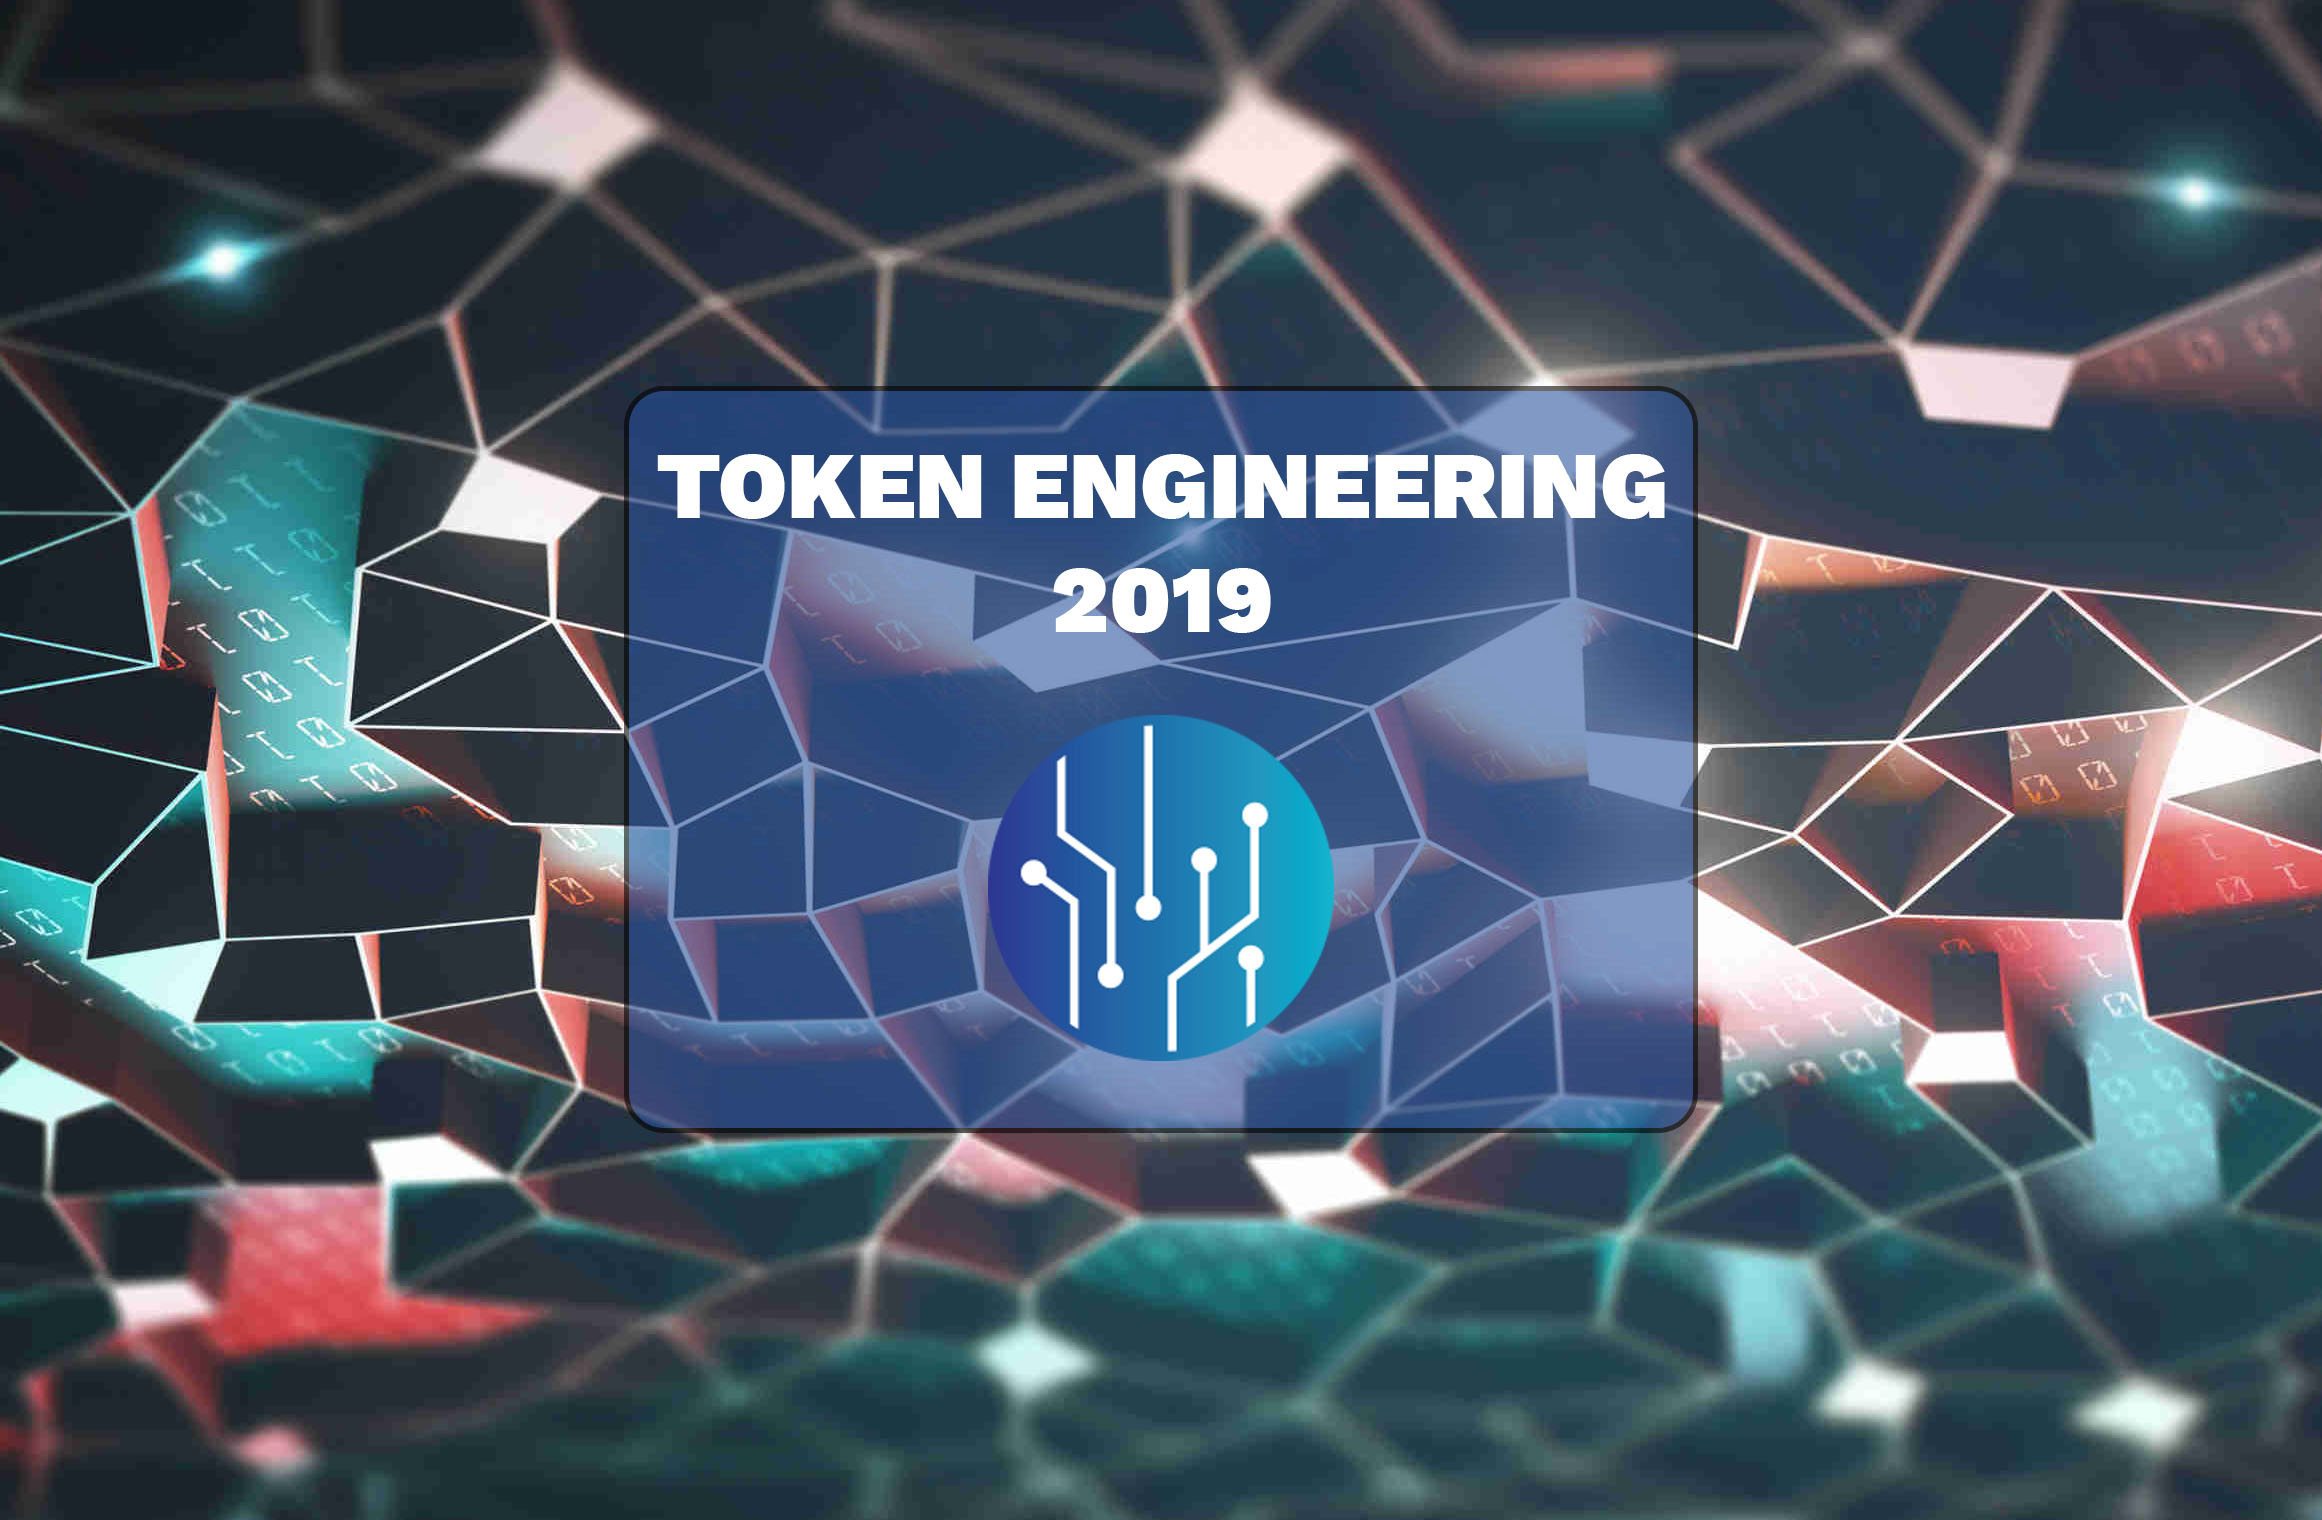 Token-Engineering-2019.jpg